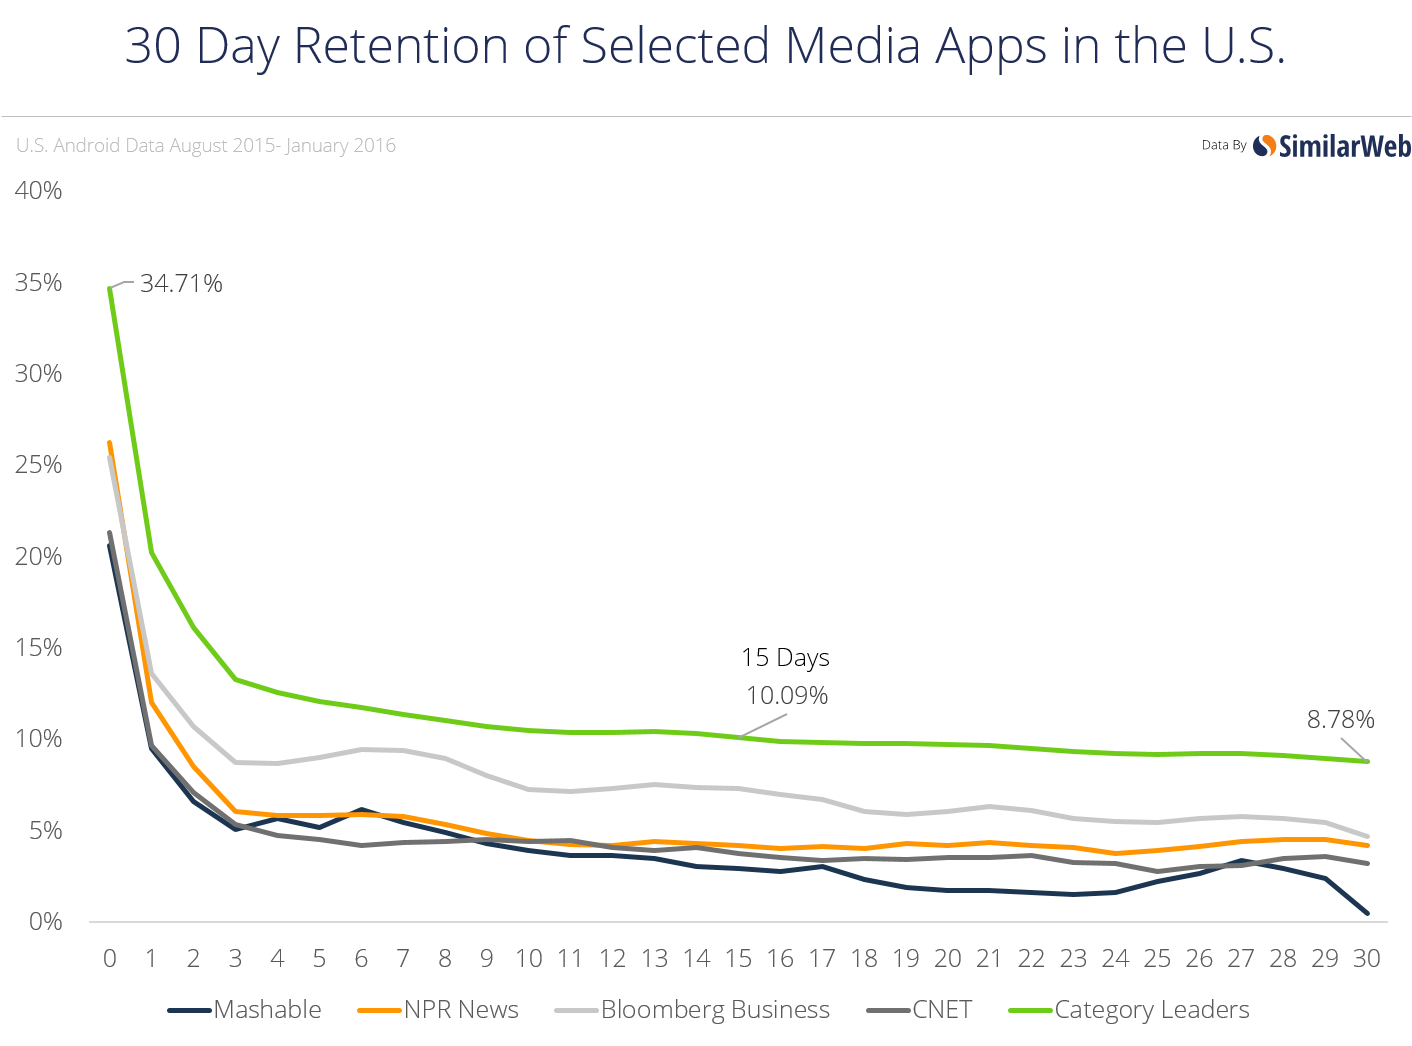 Retention for Apps in the US and UK